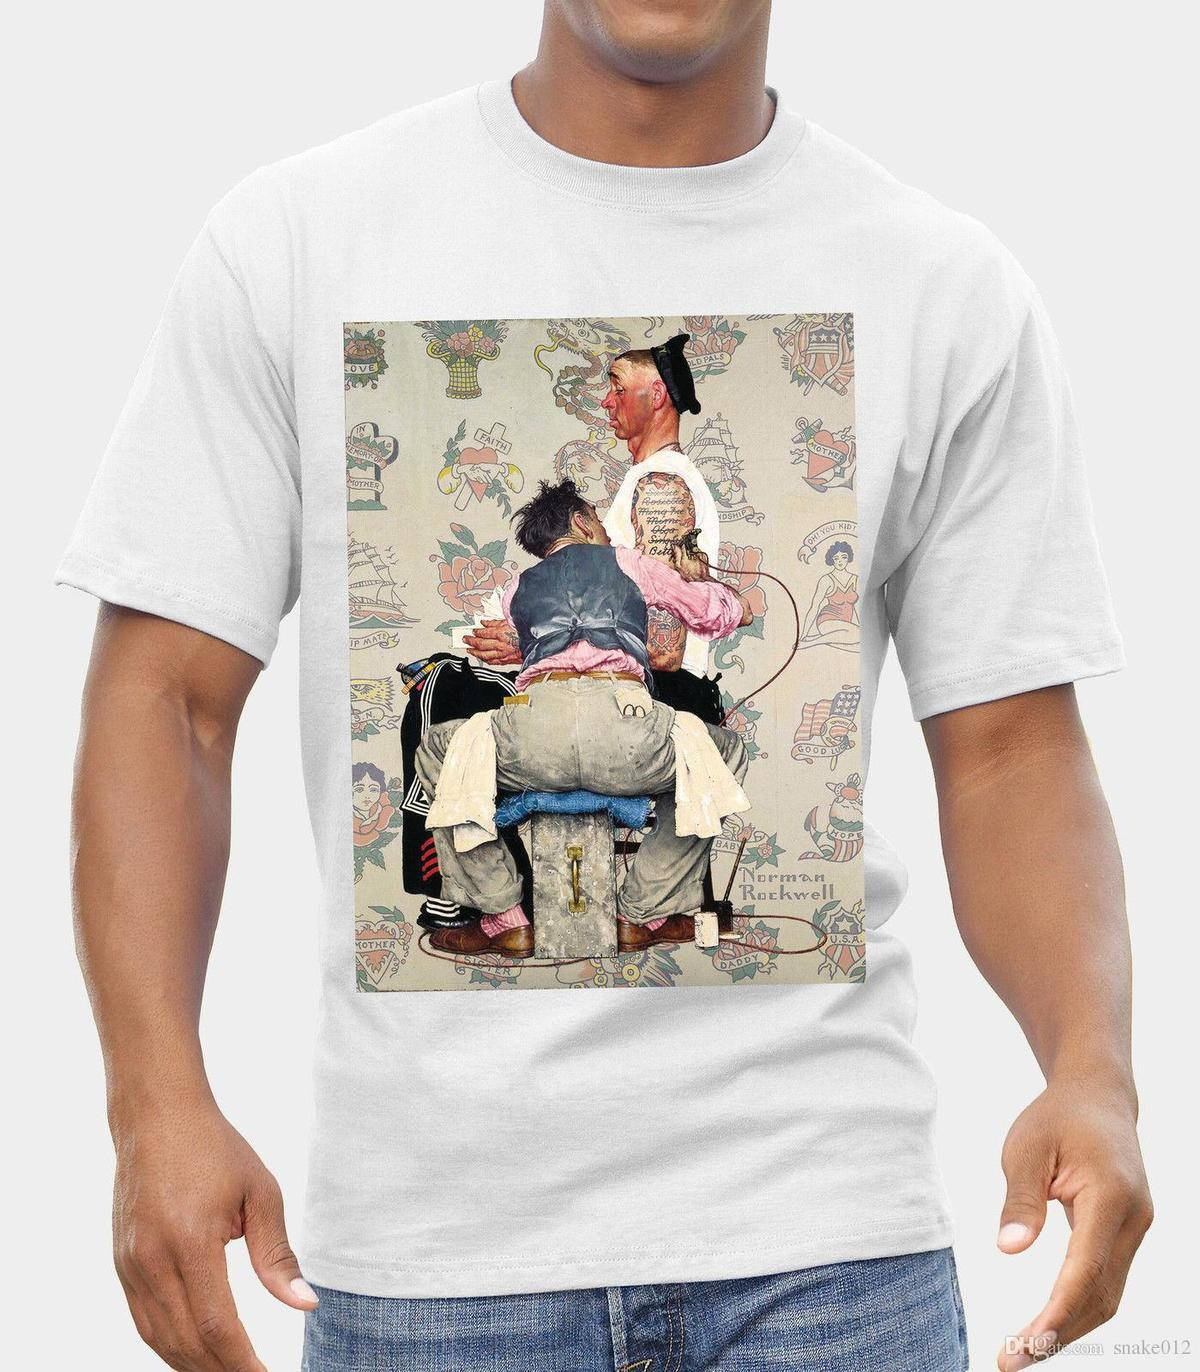 a1f2e5b85 ARTIST TATTOO NORMAN ROCKWELL LOGO T SHIRT NEW FRUIT OF THE LOOM PRINT BY  EPSON Personalised T Shirt Mens Tee Shirts From Jie48, $14.67| DHgate.Com